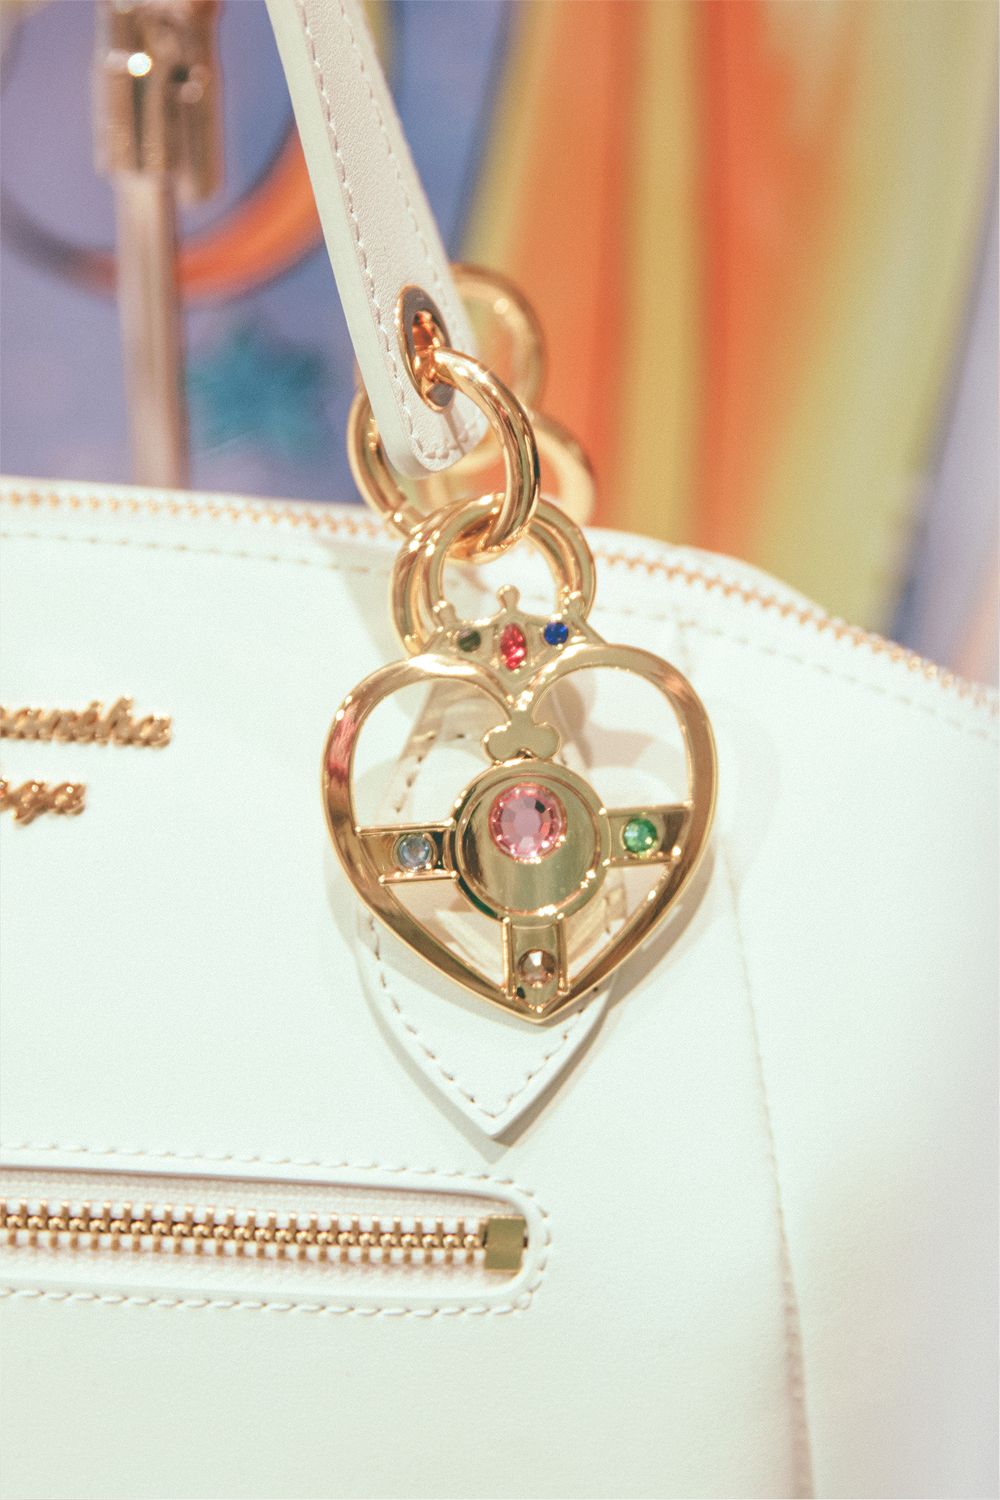 This Cosmic brooch handbag was gorgeous, but expensive at ¥45000, roughly $400!